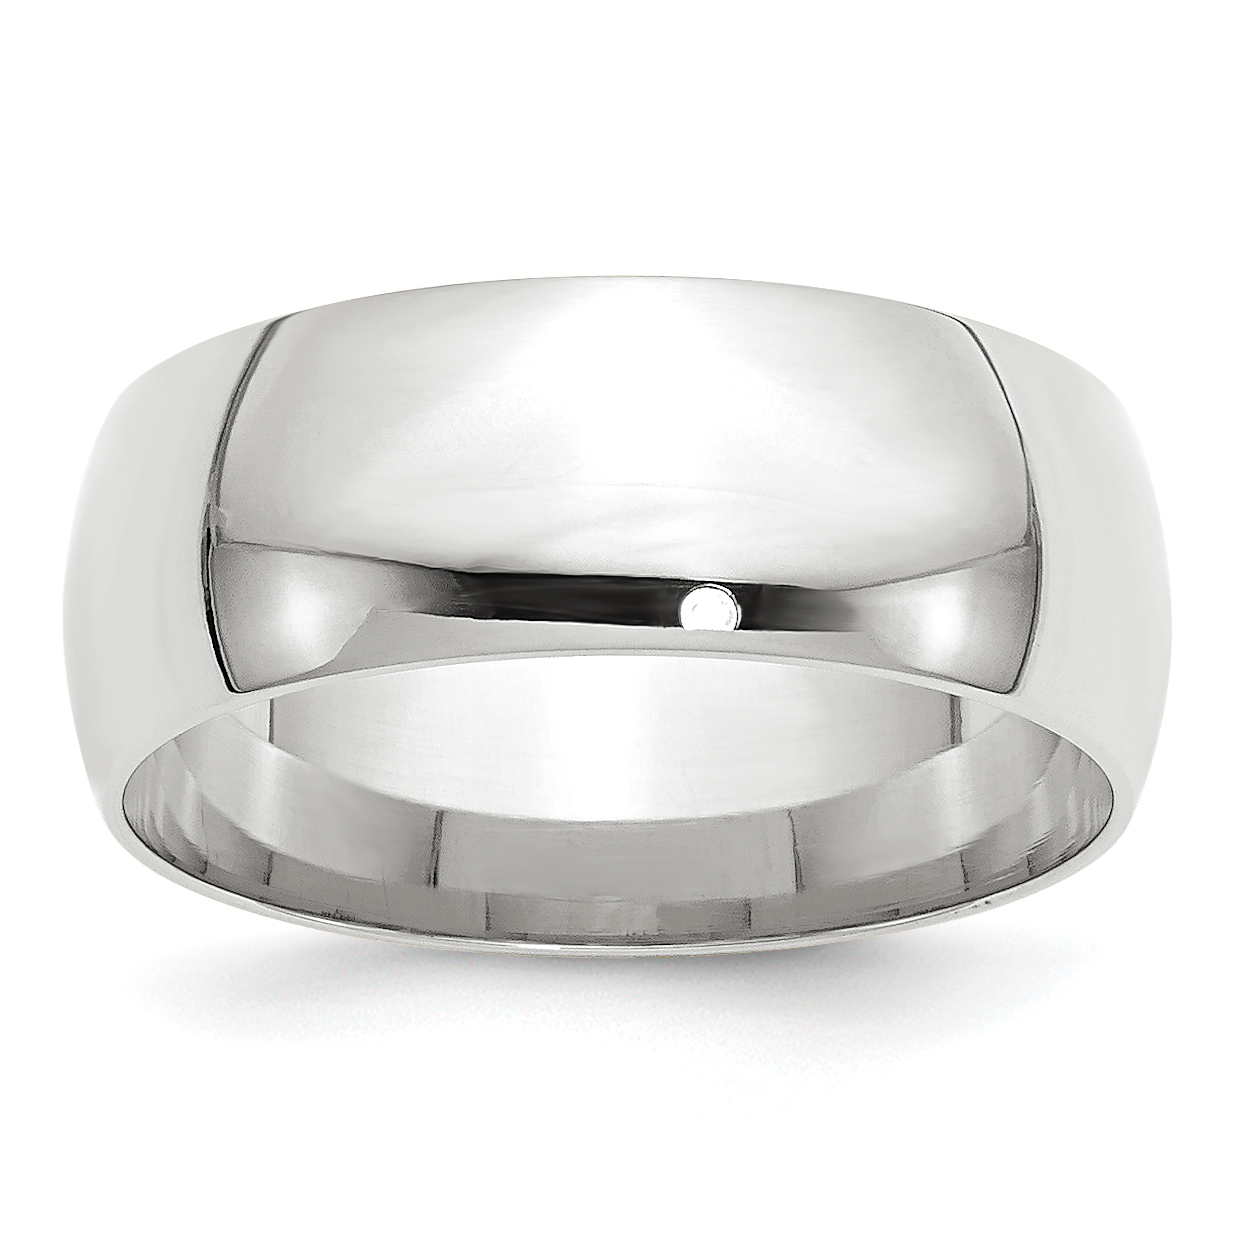 10K White Gold 8mm Light Weight Comfort Fit Band Size 5.5 - image 3 de 3